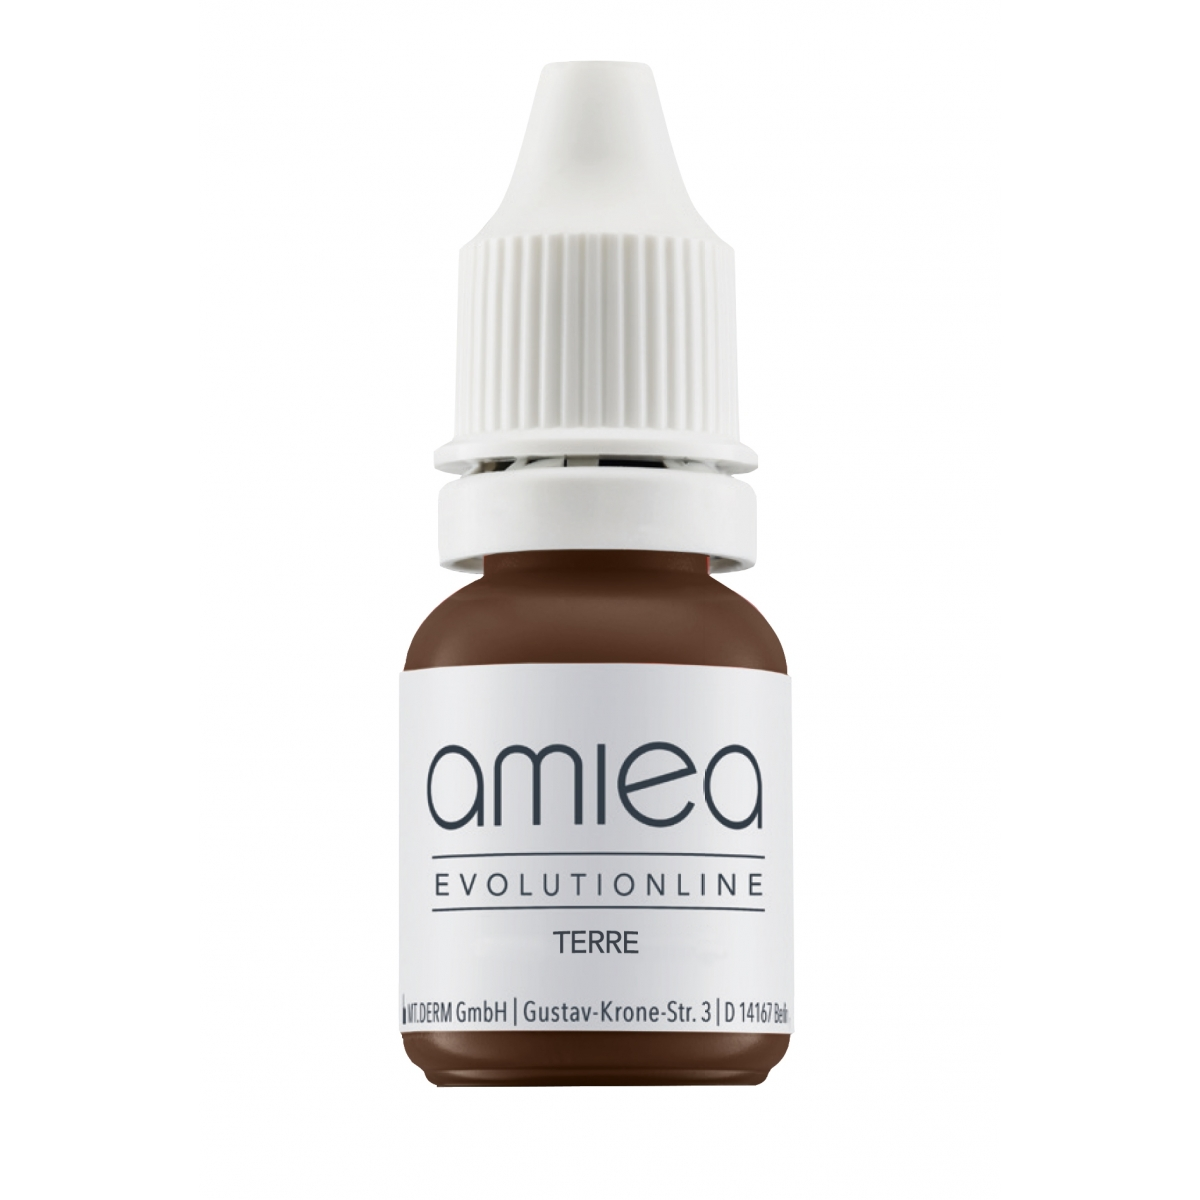 Evolutionline (10 ml) - PIGMENTS AMIEA EVOLUTIONLINE TERRE, 10 ml